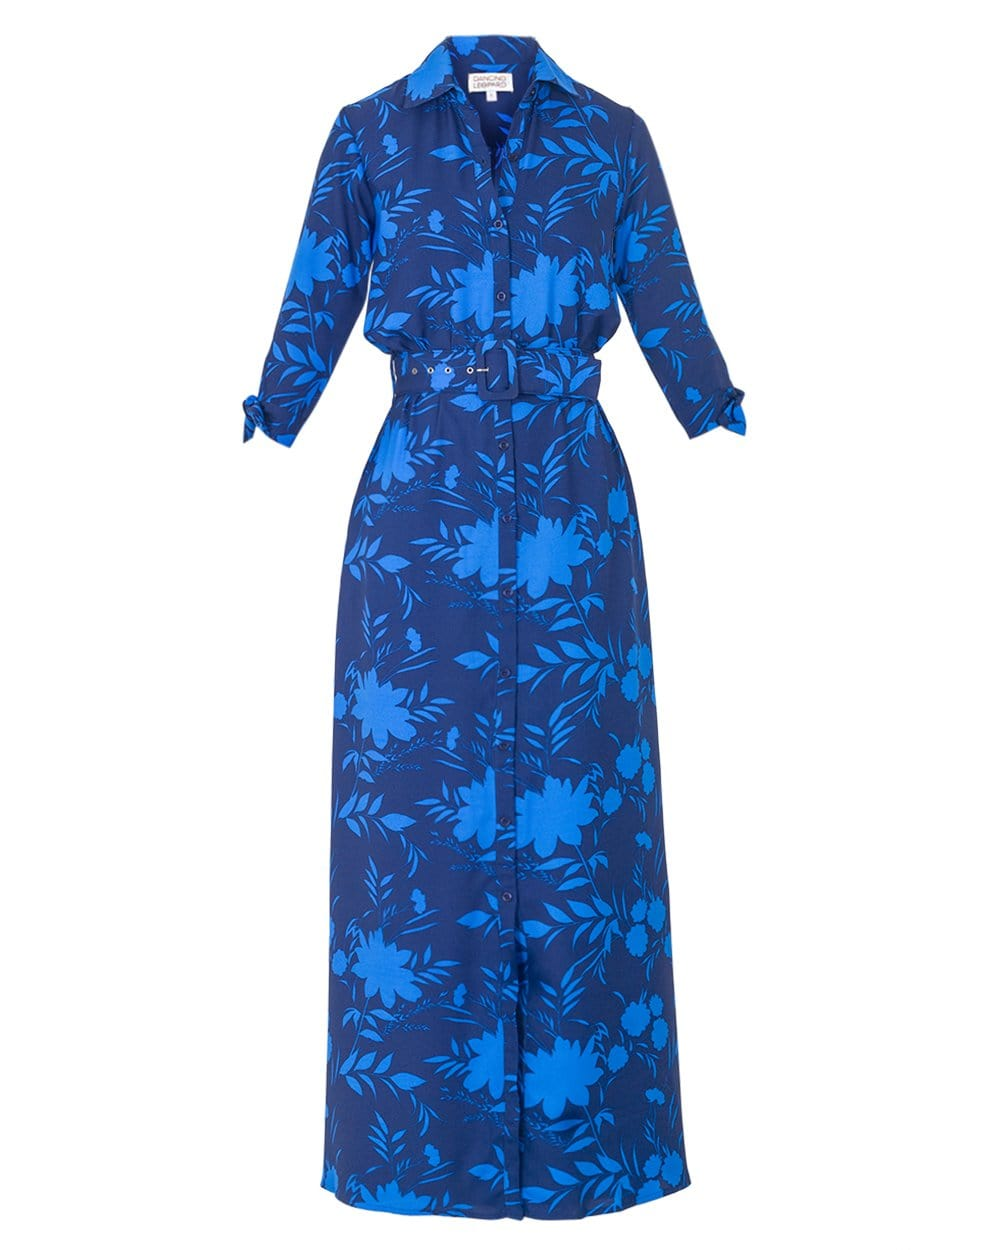 Dancing Leopard Dove Dress in Blue Silhouette Ground